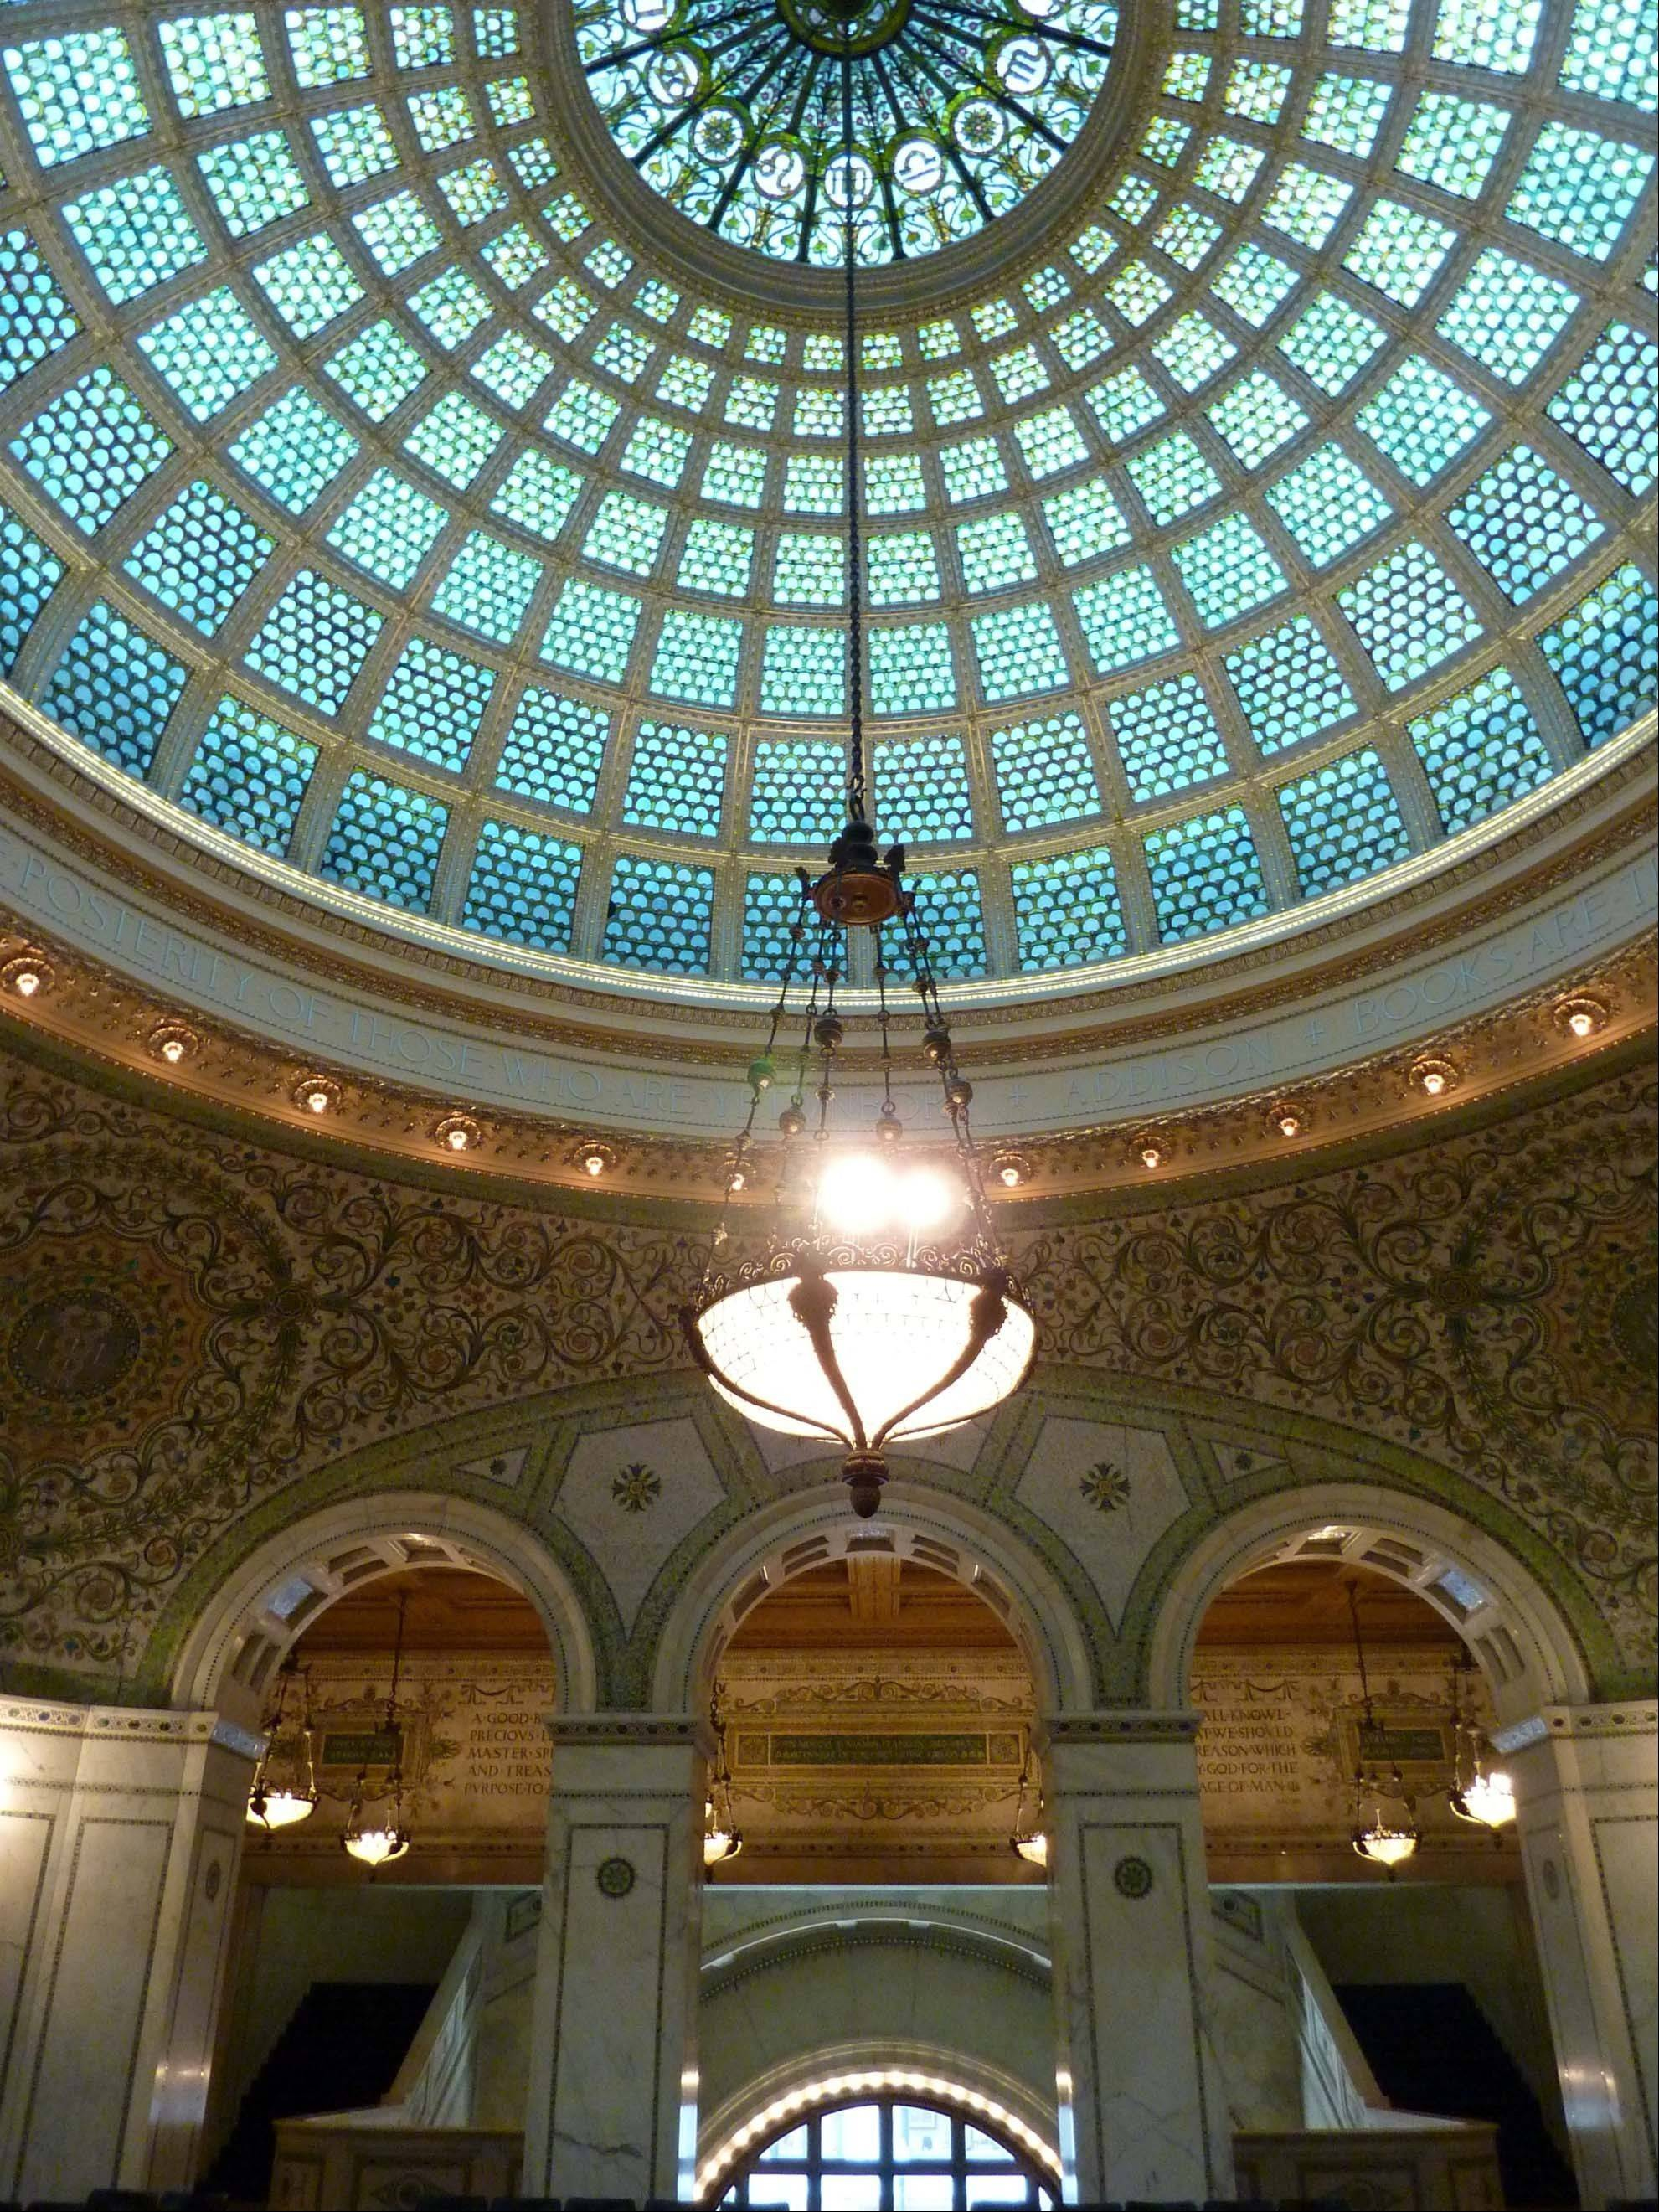 The Chicago Cultural Center will be part of the Chicago Architecture Foundation's Open House Chicago.